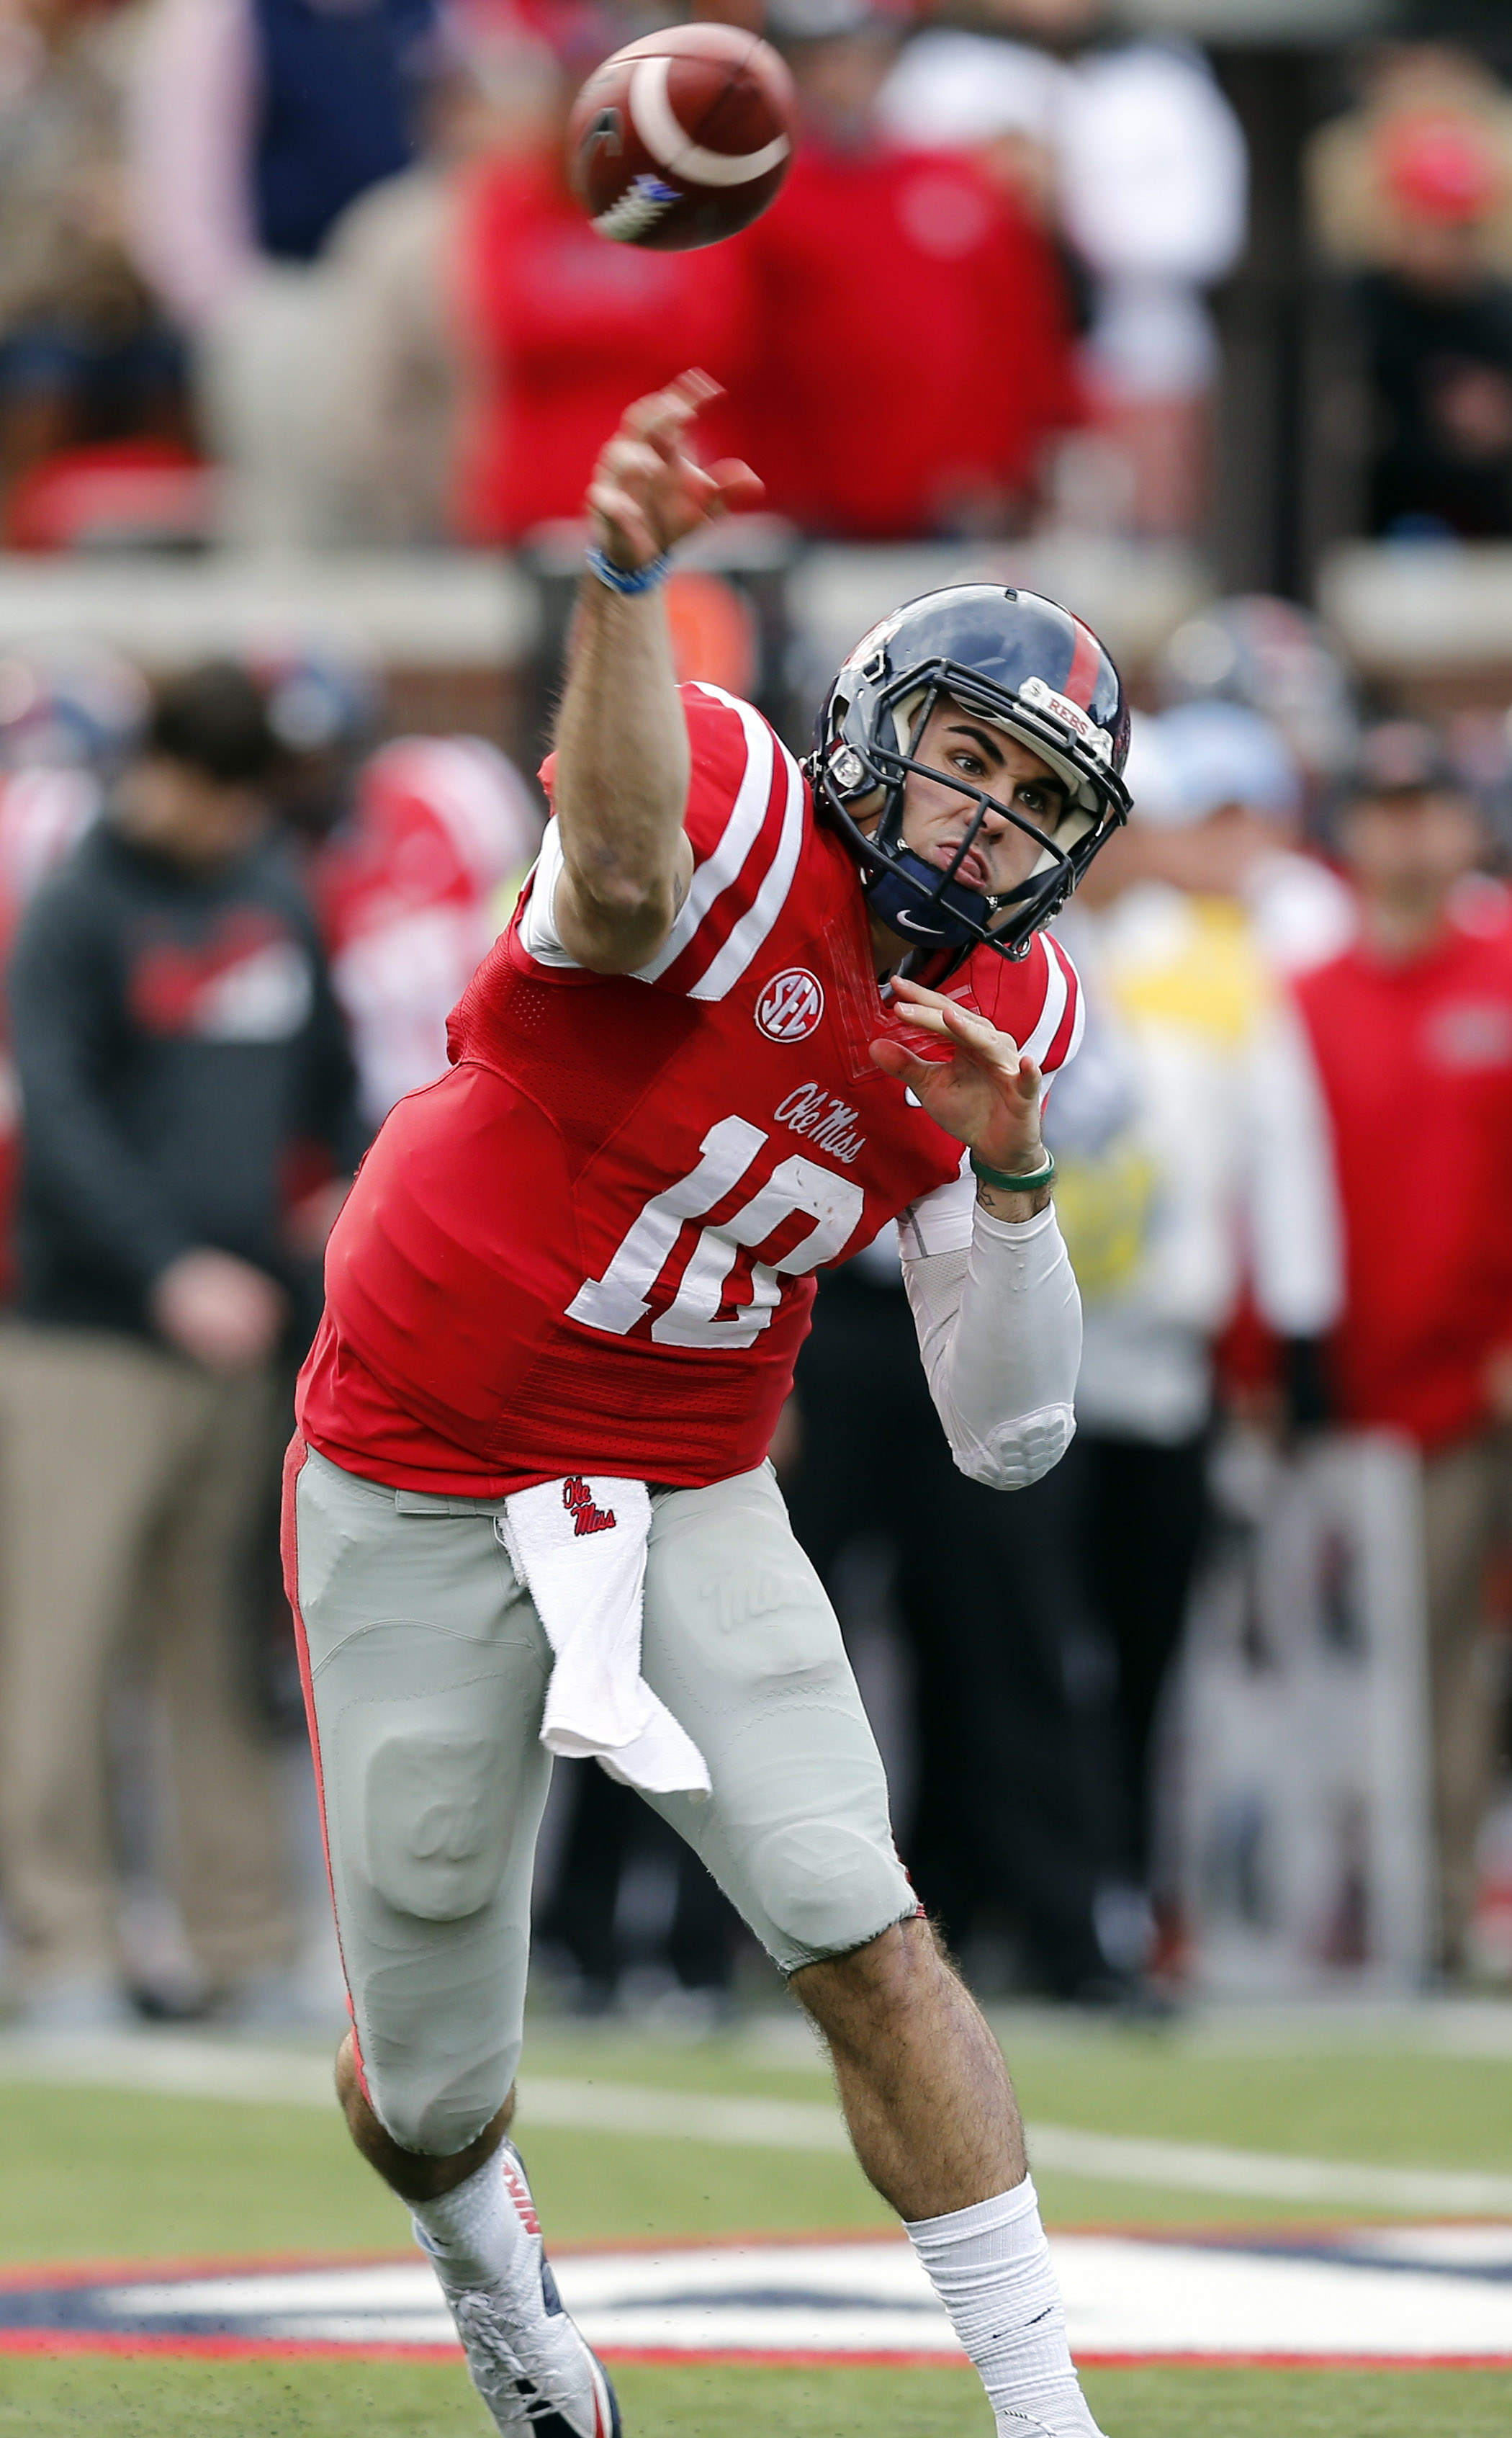 Mississippi quarterback Chad Kelly (10) passes against LSU in the first half of an NCAA college football game in Oxford, Miss., Saturday, Nov. 21, 2015. (AP Photo/Rogelio V. Solis)